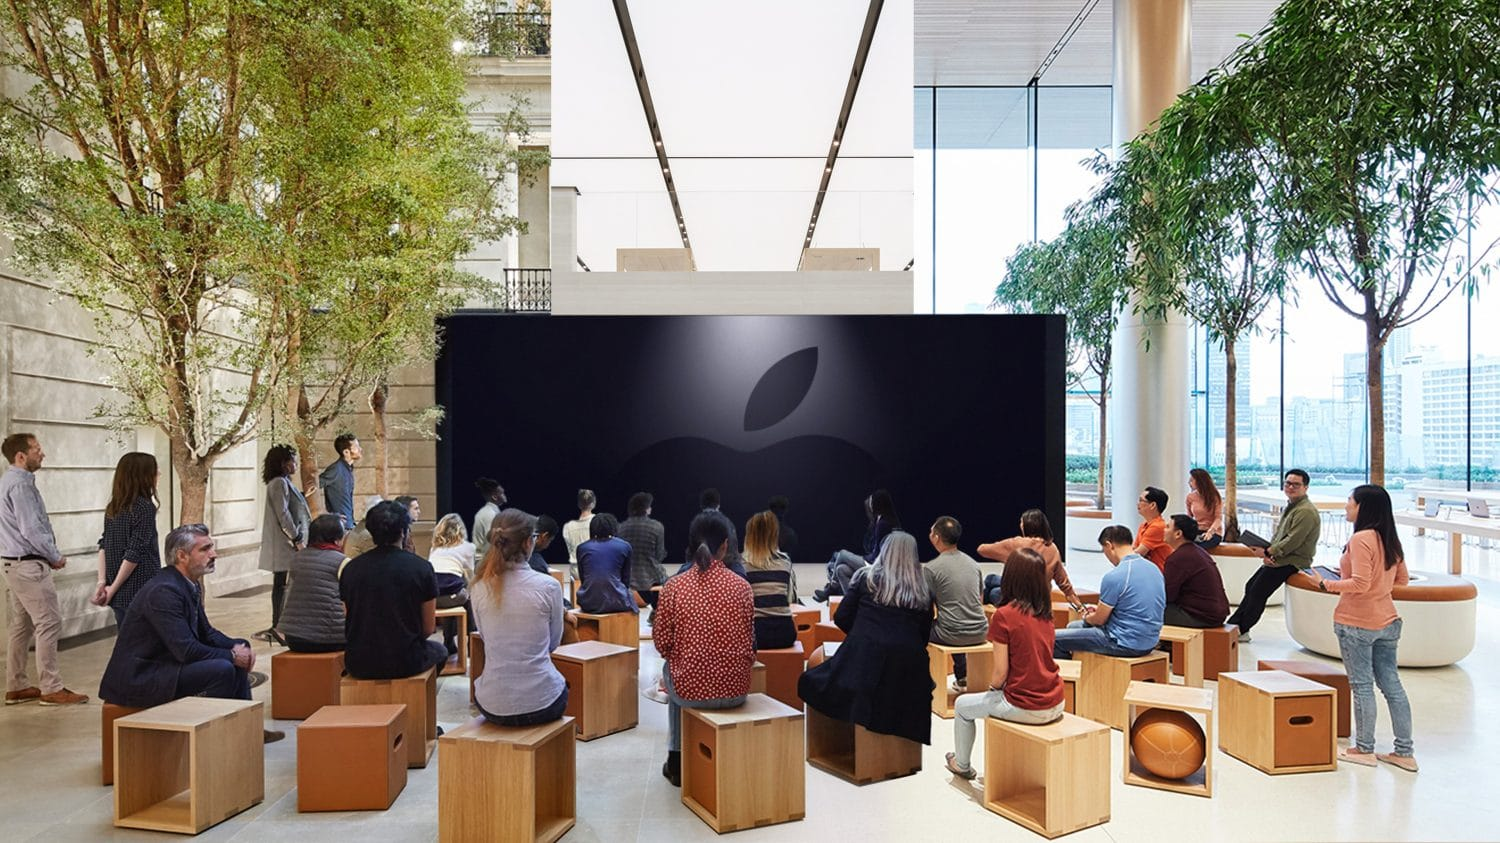 Today at Apple session image